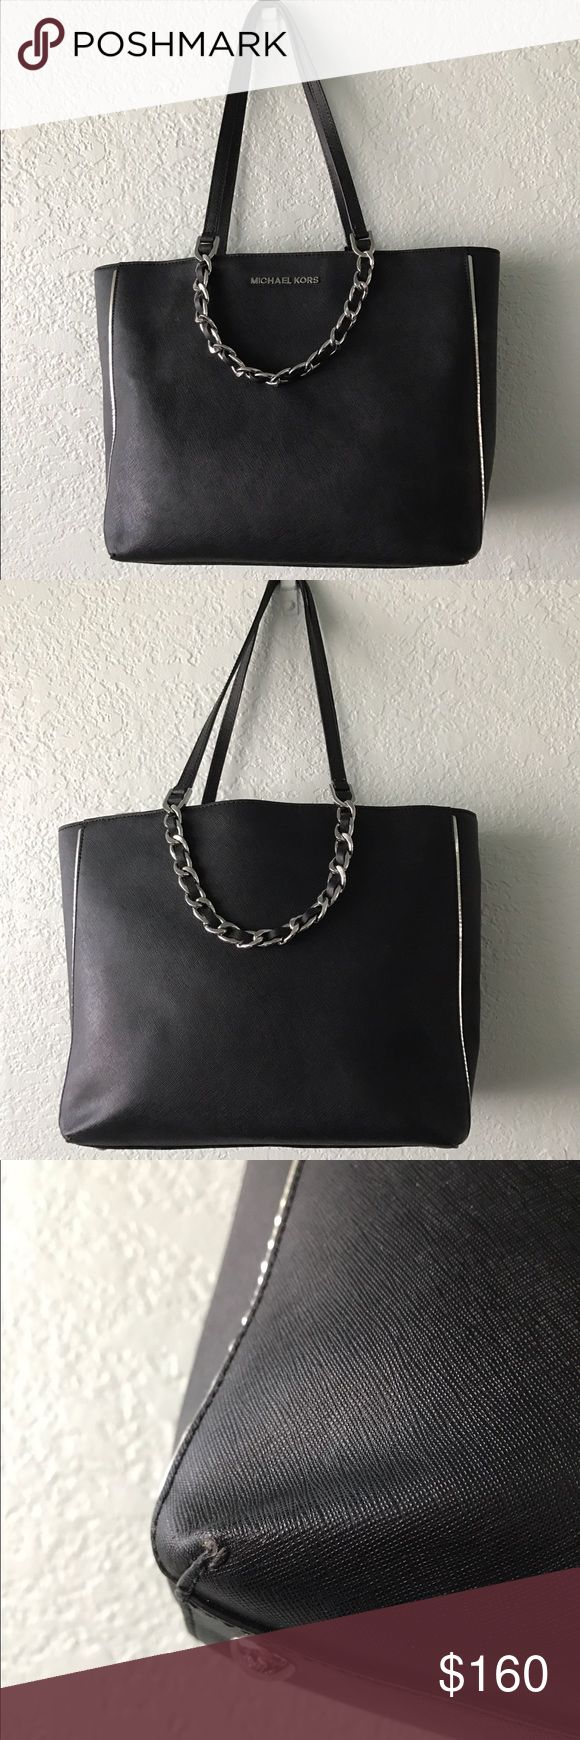 Michael Kors Tote Bag Gently used Michael Kors Tote in Black // Minor wear at the bottom edges and very minor wear inside of bag // Stuffing filled to keep the shape // No measuring tape to measure the size of bag // price firm Michael Kors Bags Totes